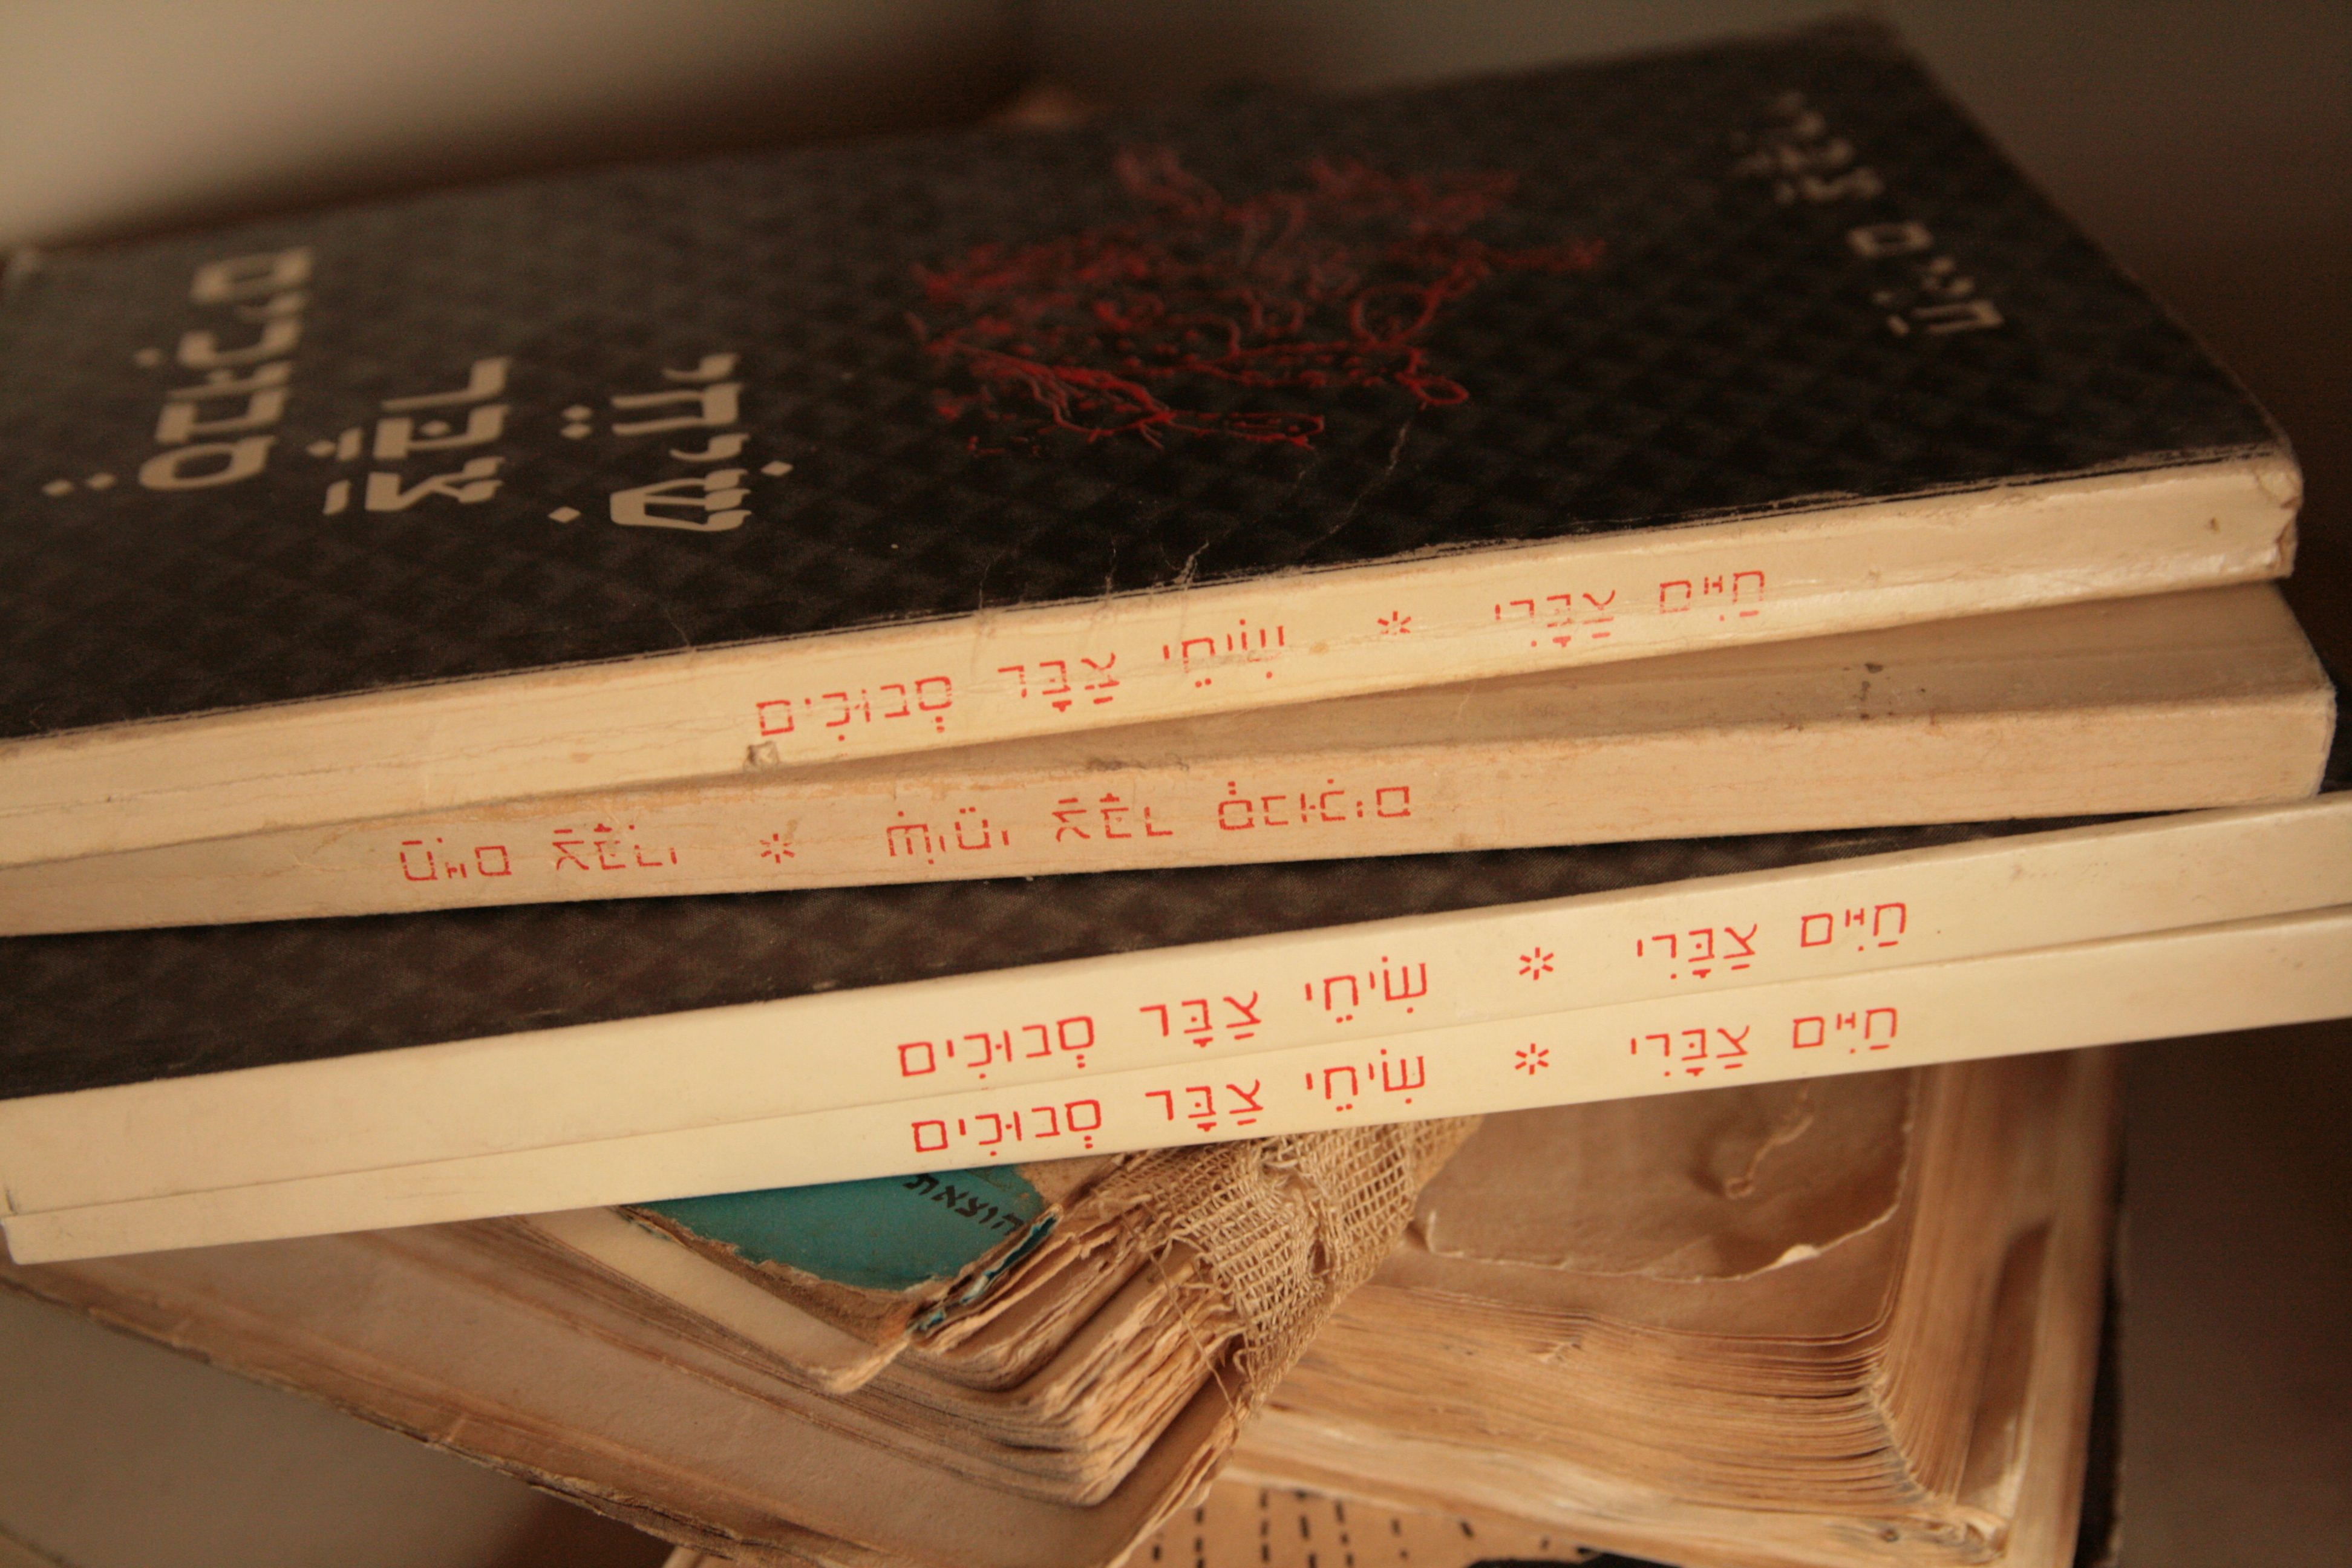 Copies of my father's poetry book